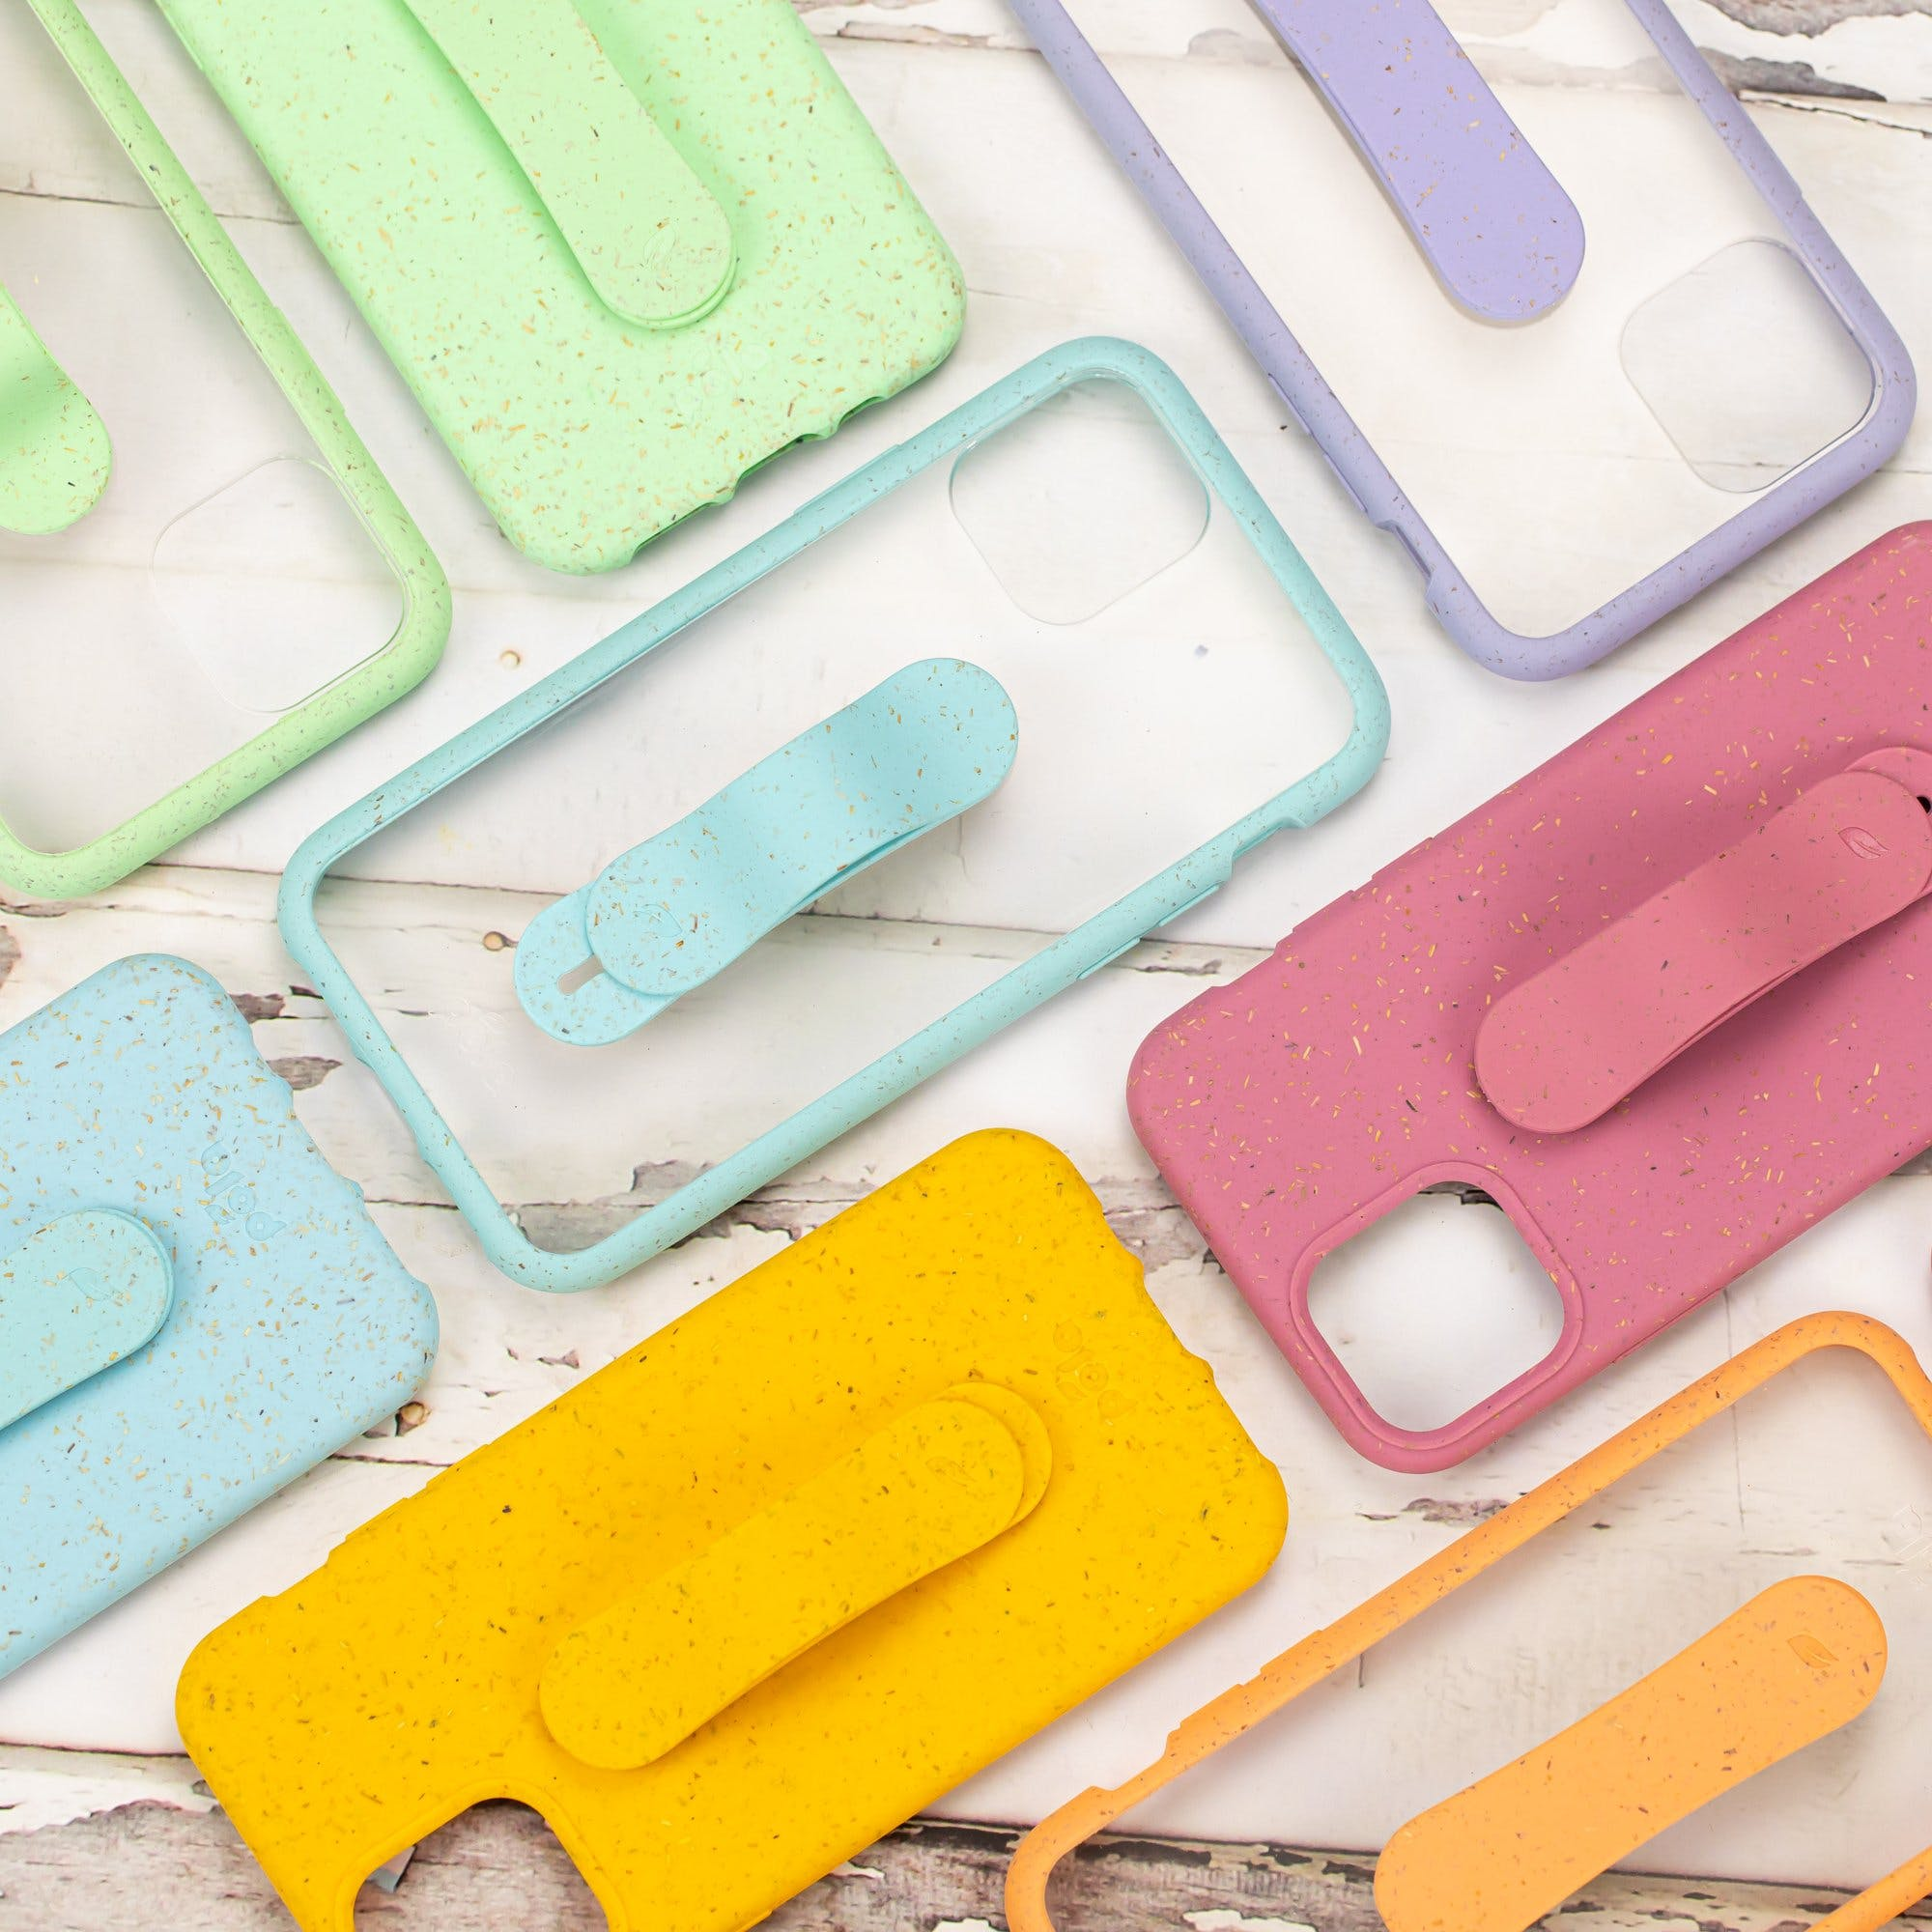 Biodegradable eco-friendly Pela Grip phone grips